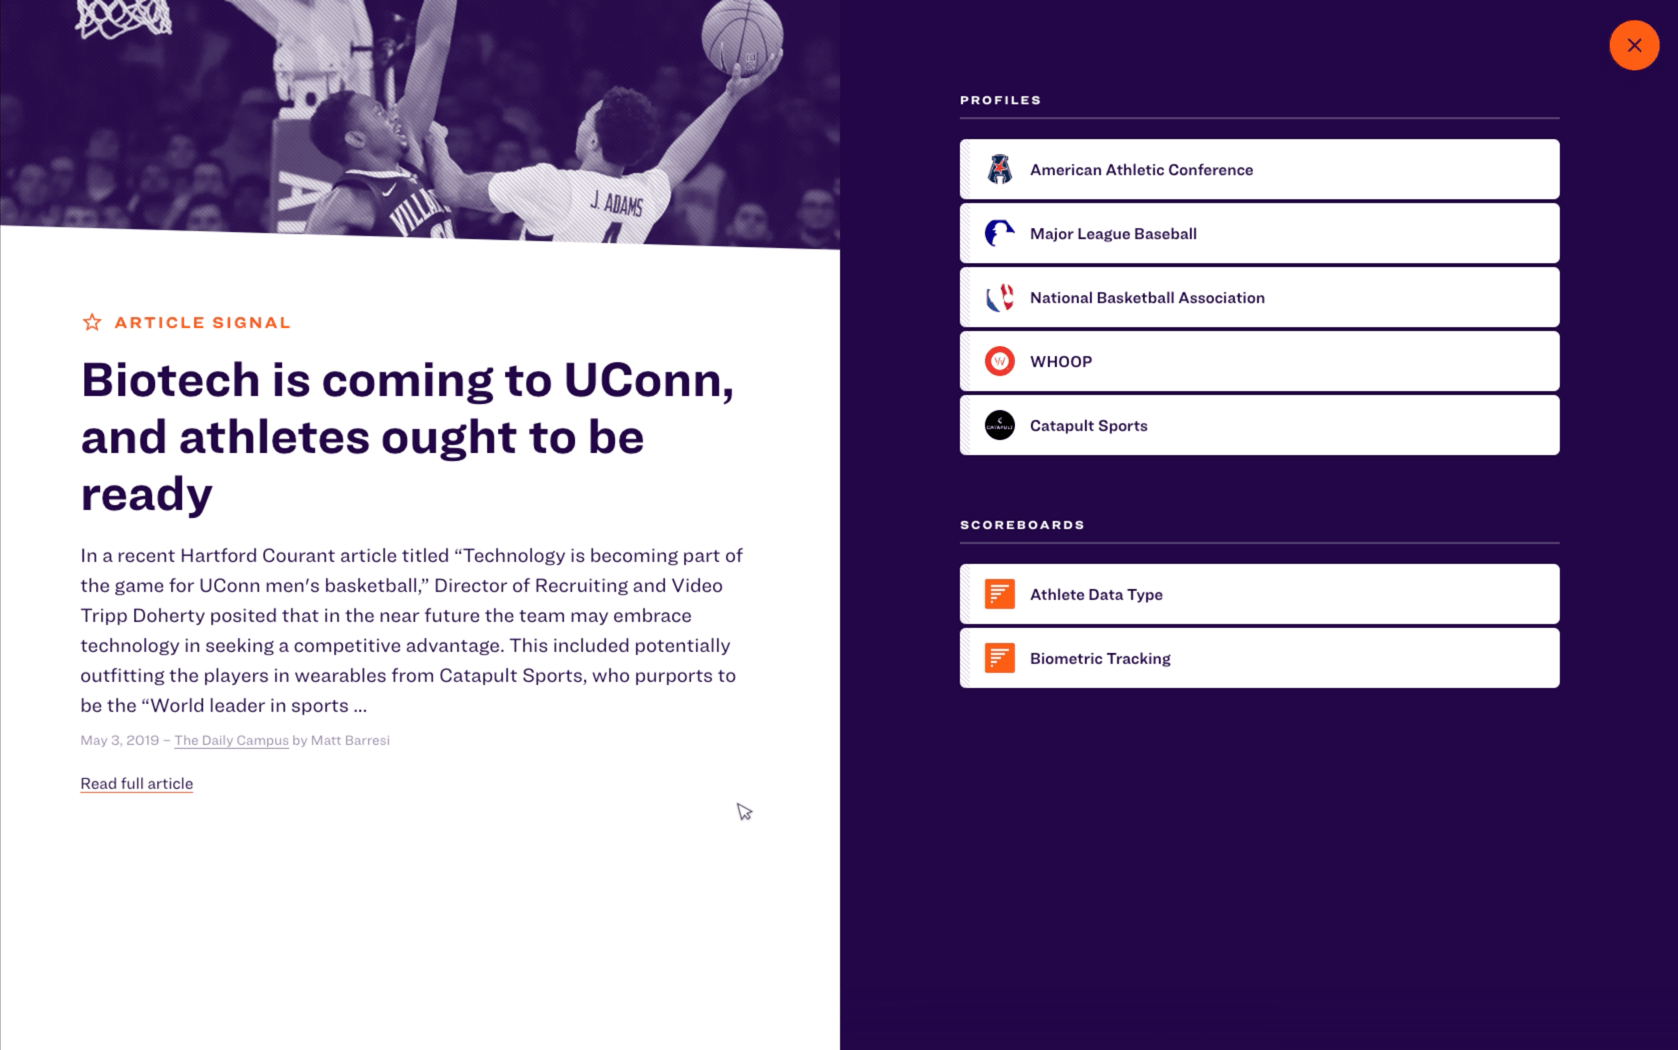 """A modal view for the article """"Biotech is coming to UConn, and athletes ought to be ready."""" On the left is an excerpt from the article, and on the right are associated profiles and scoreboards."""